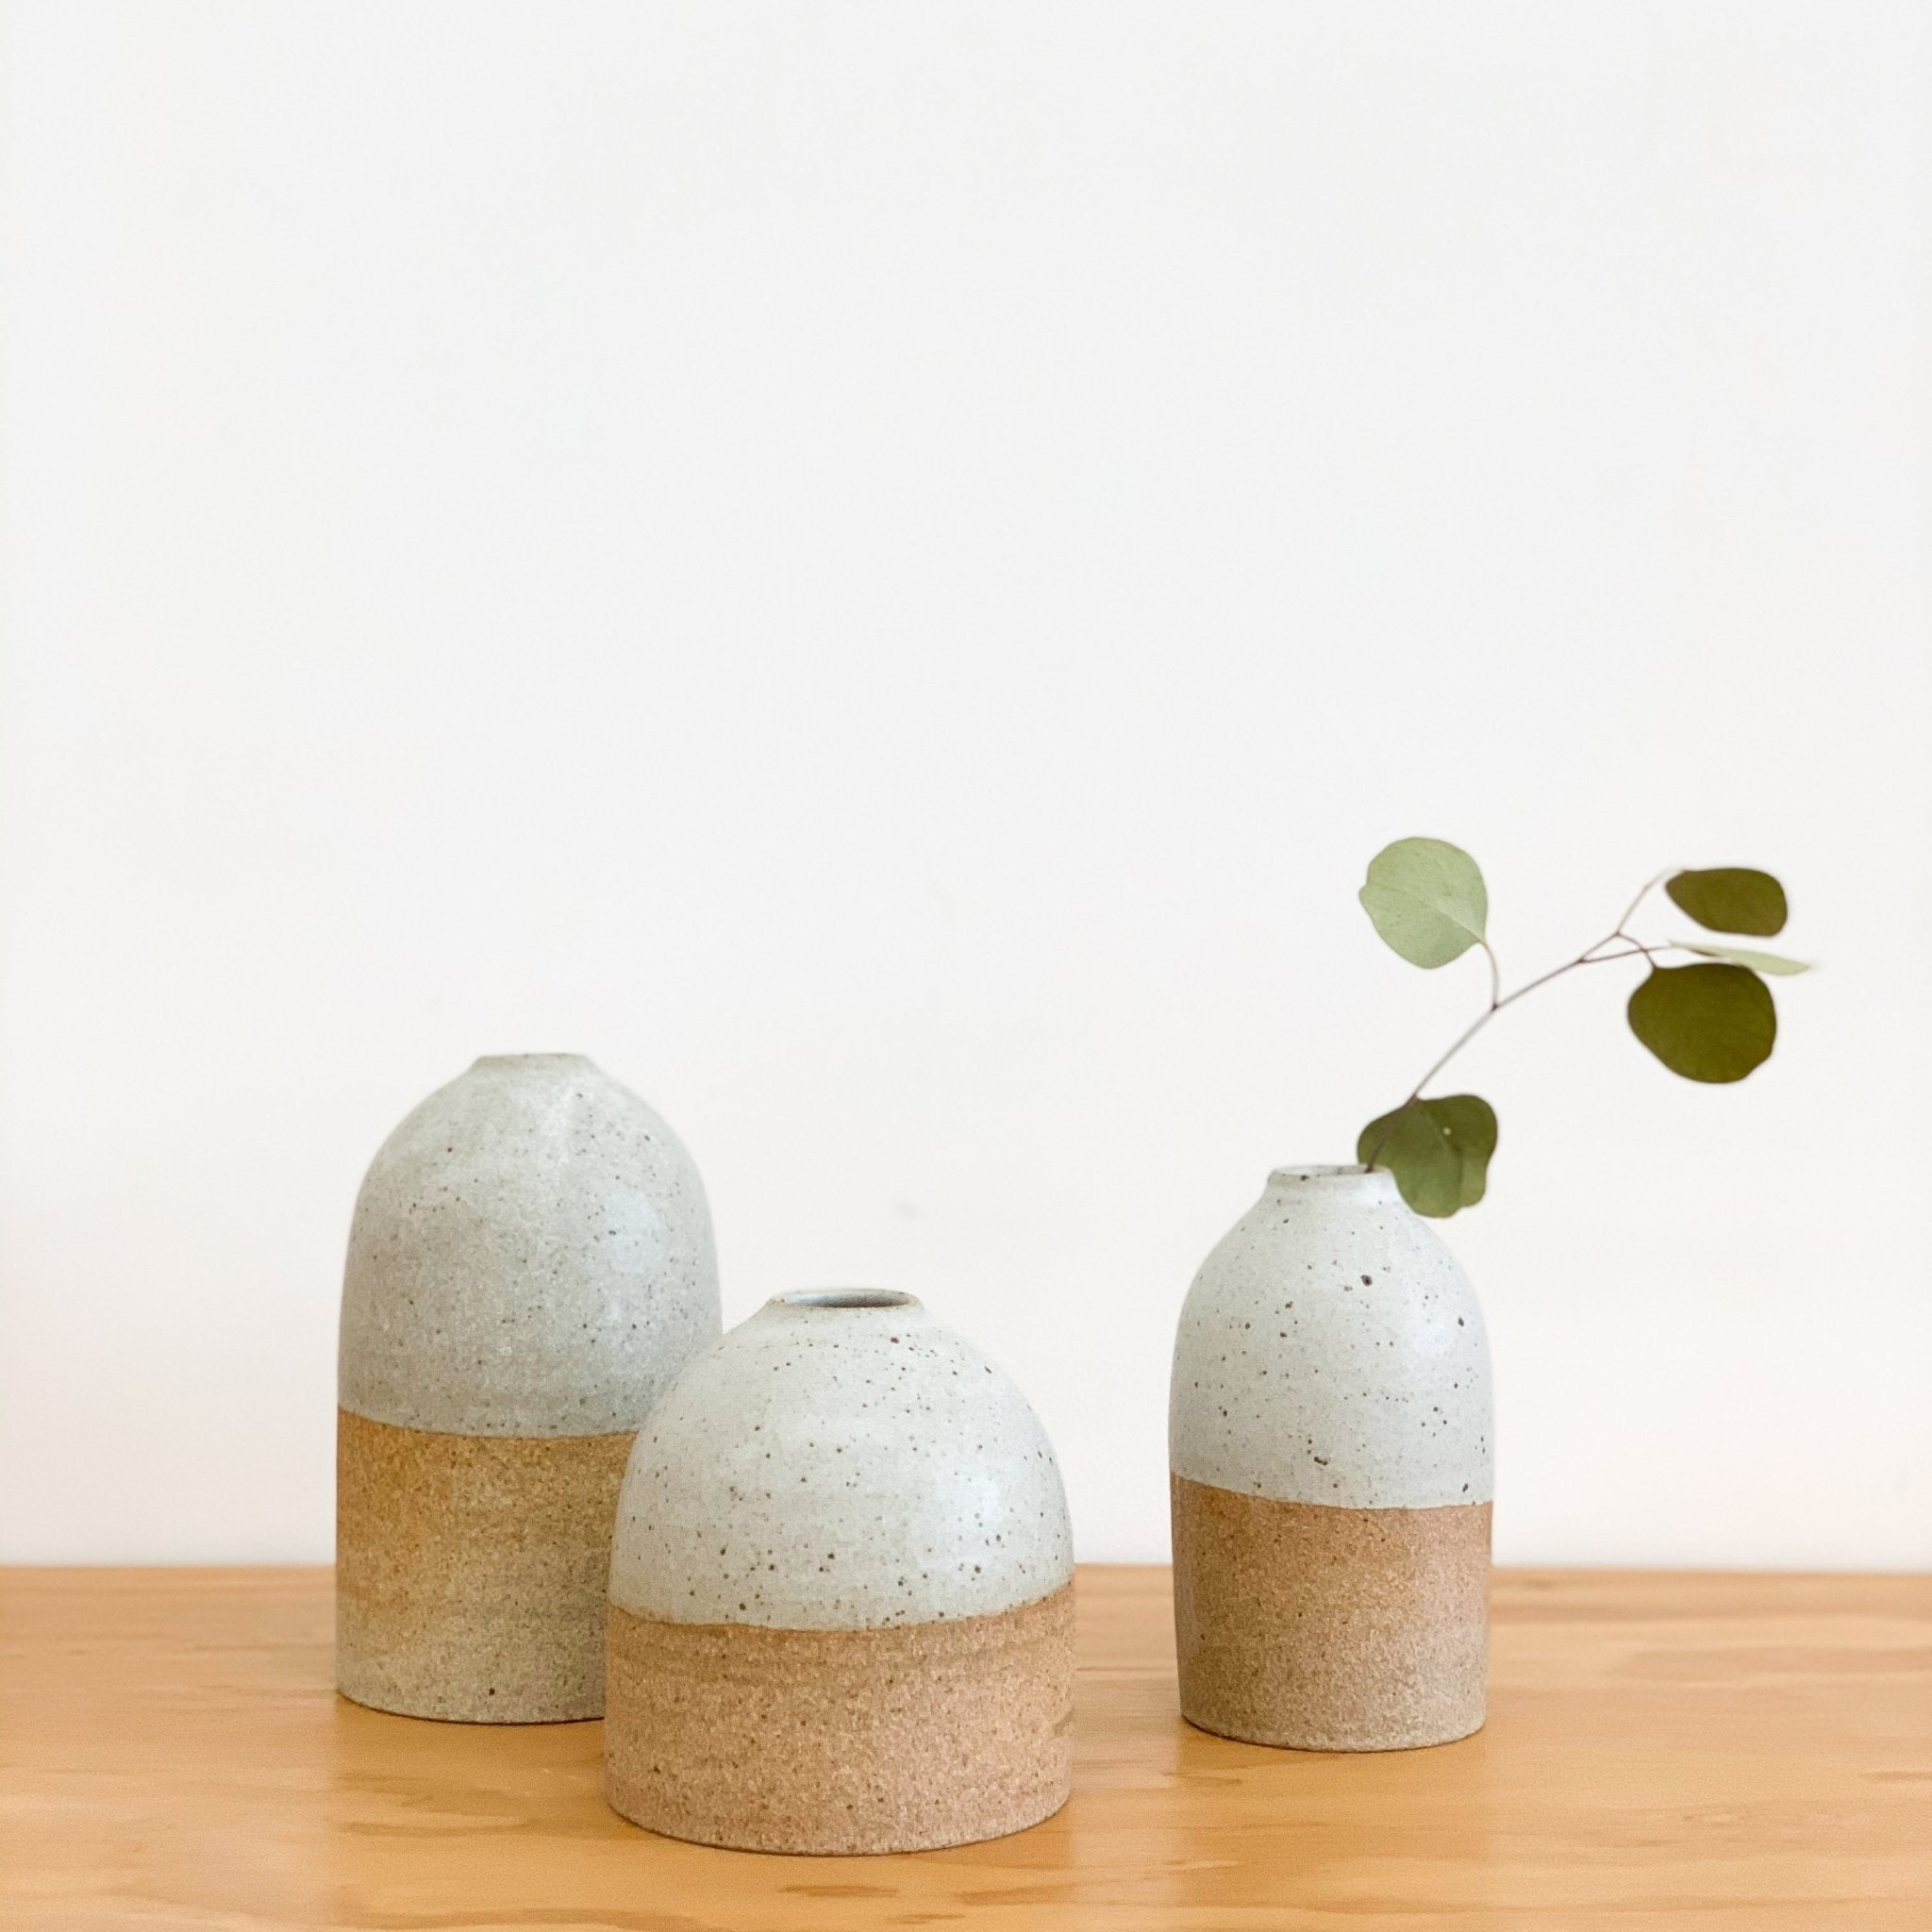 Organic round bud vases made in LA by Tomoko Morisaki